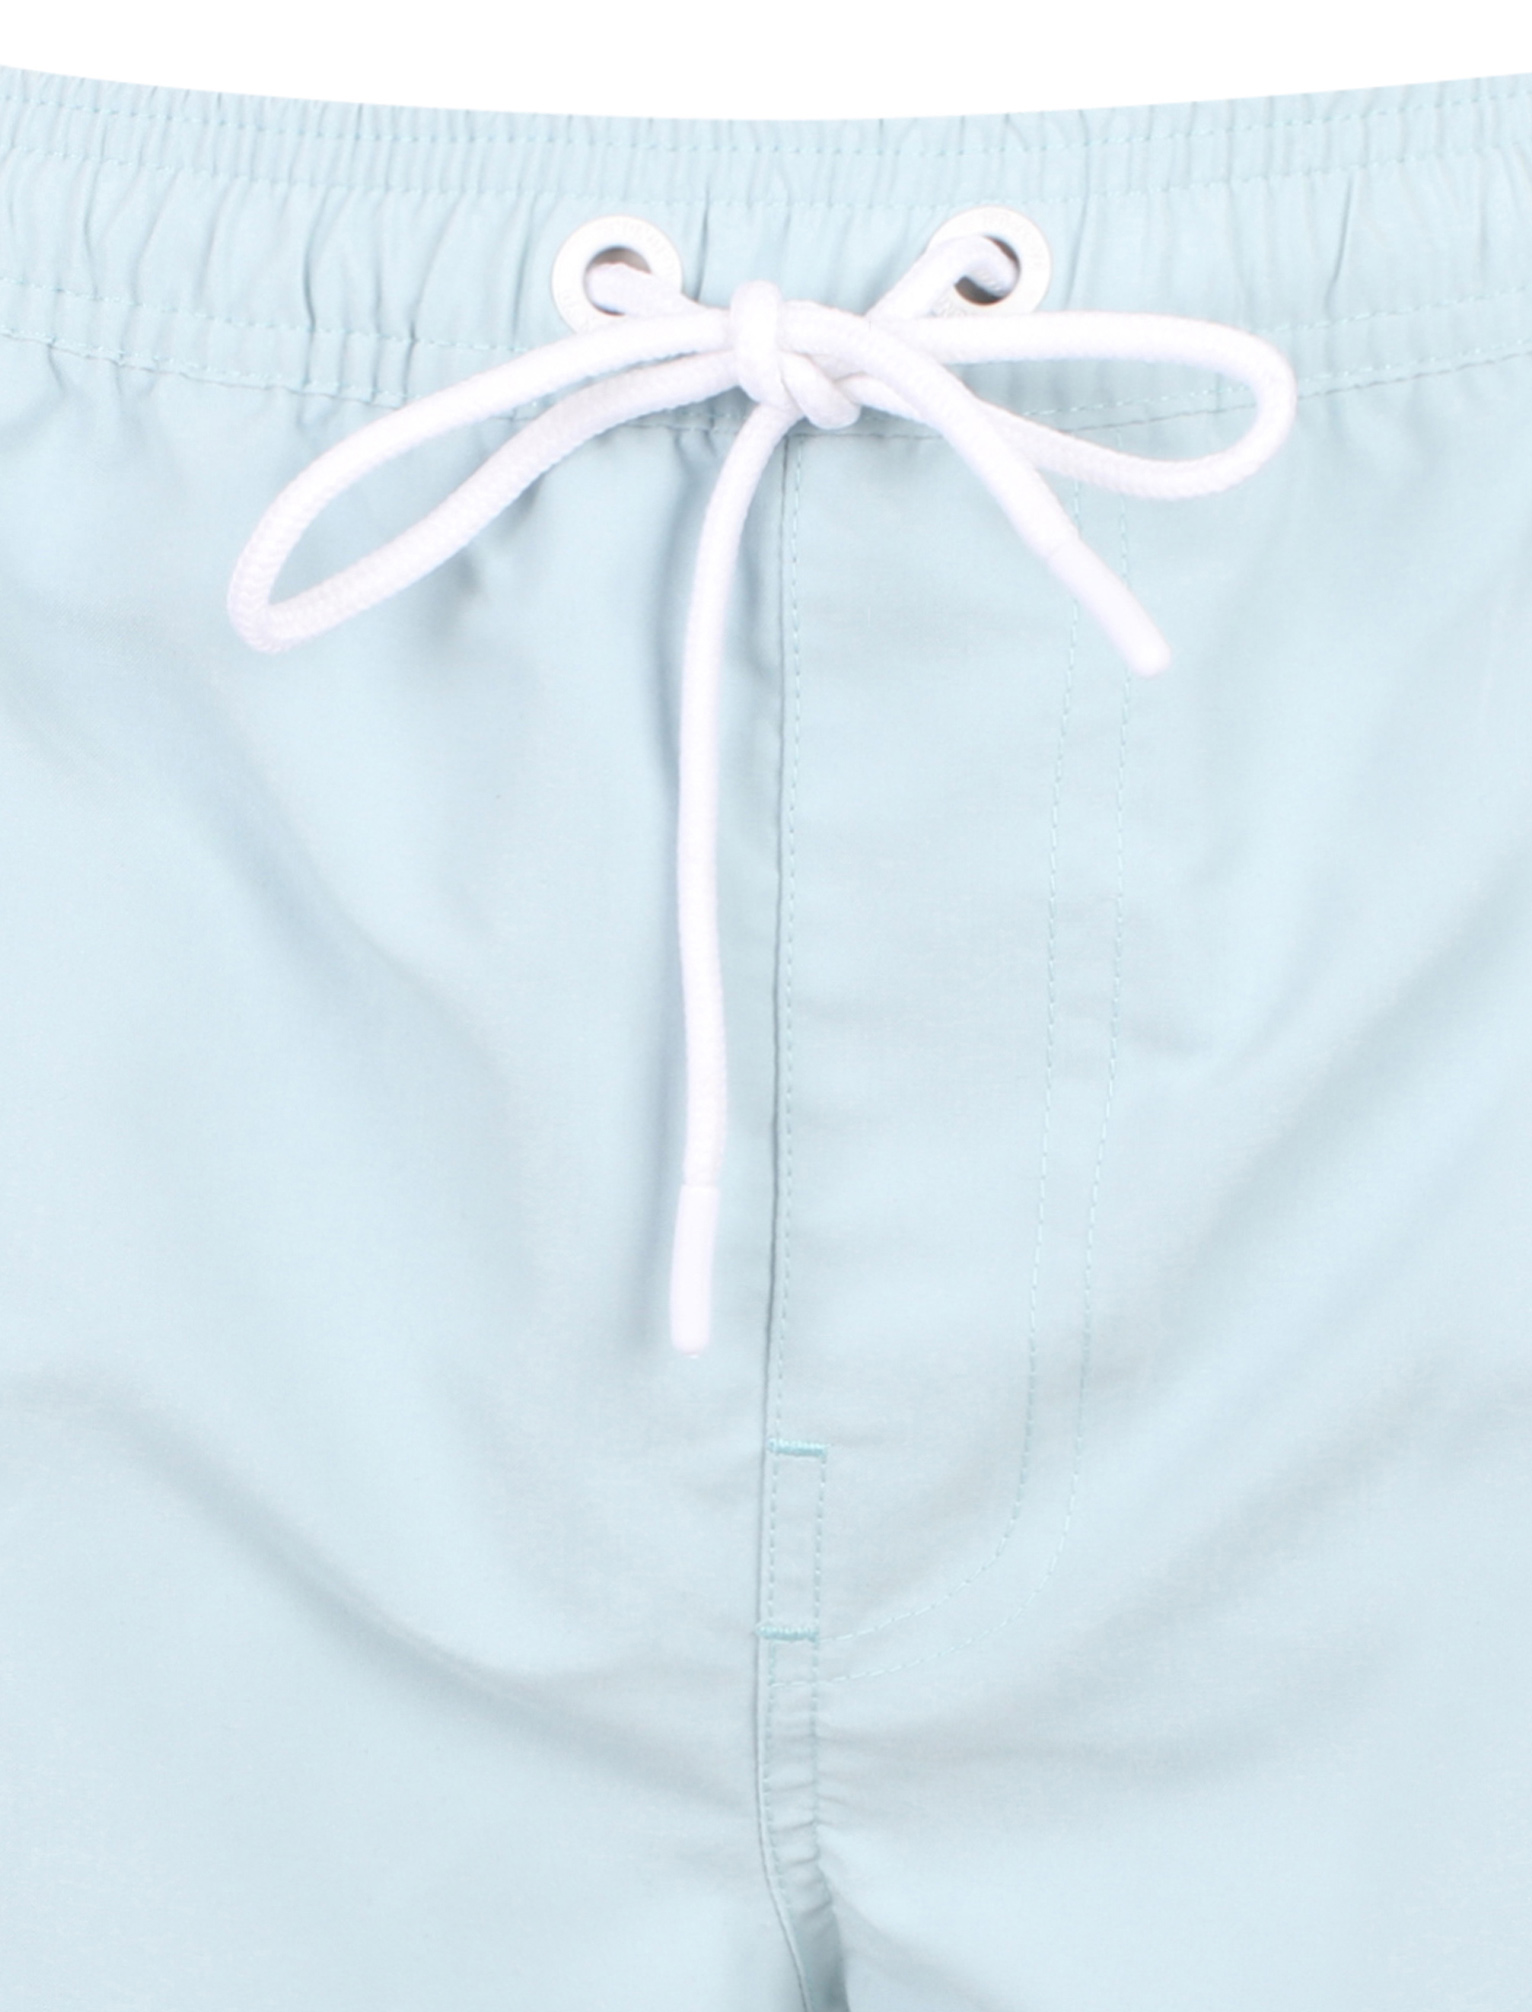 New-Mens-Tokyo-Laundry-Branded-Classic-Soft-Swim-Shorts-With-Pockets-Size-S-XXL thumbnail 7